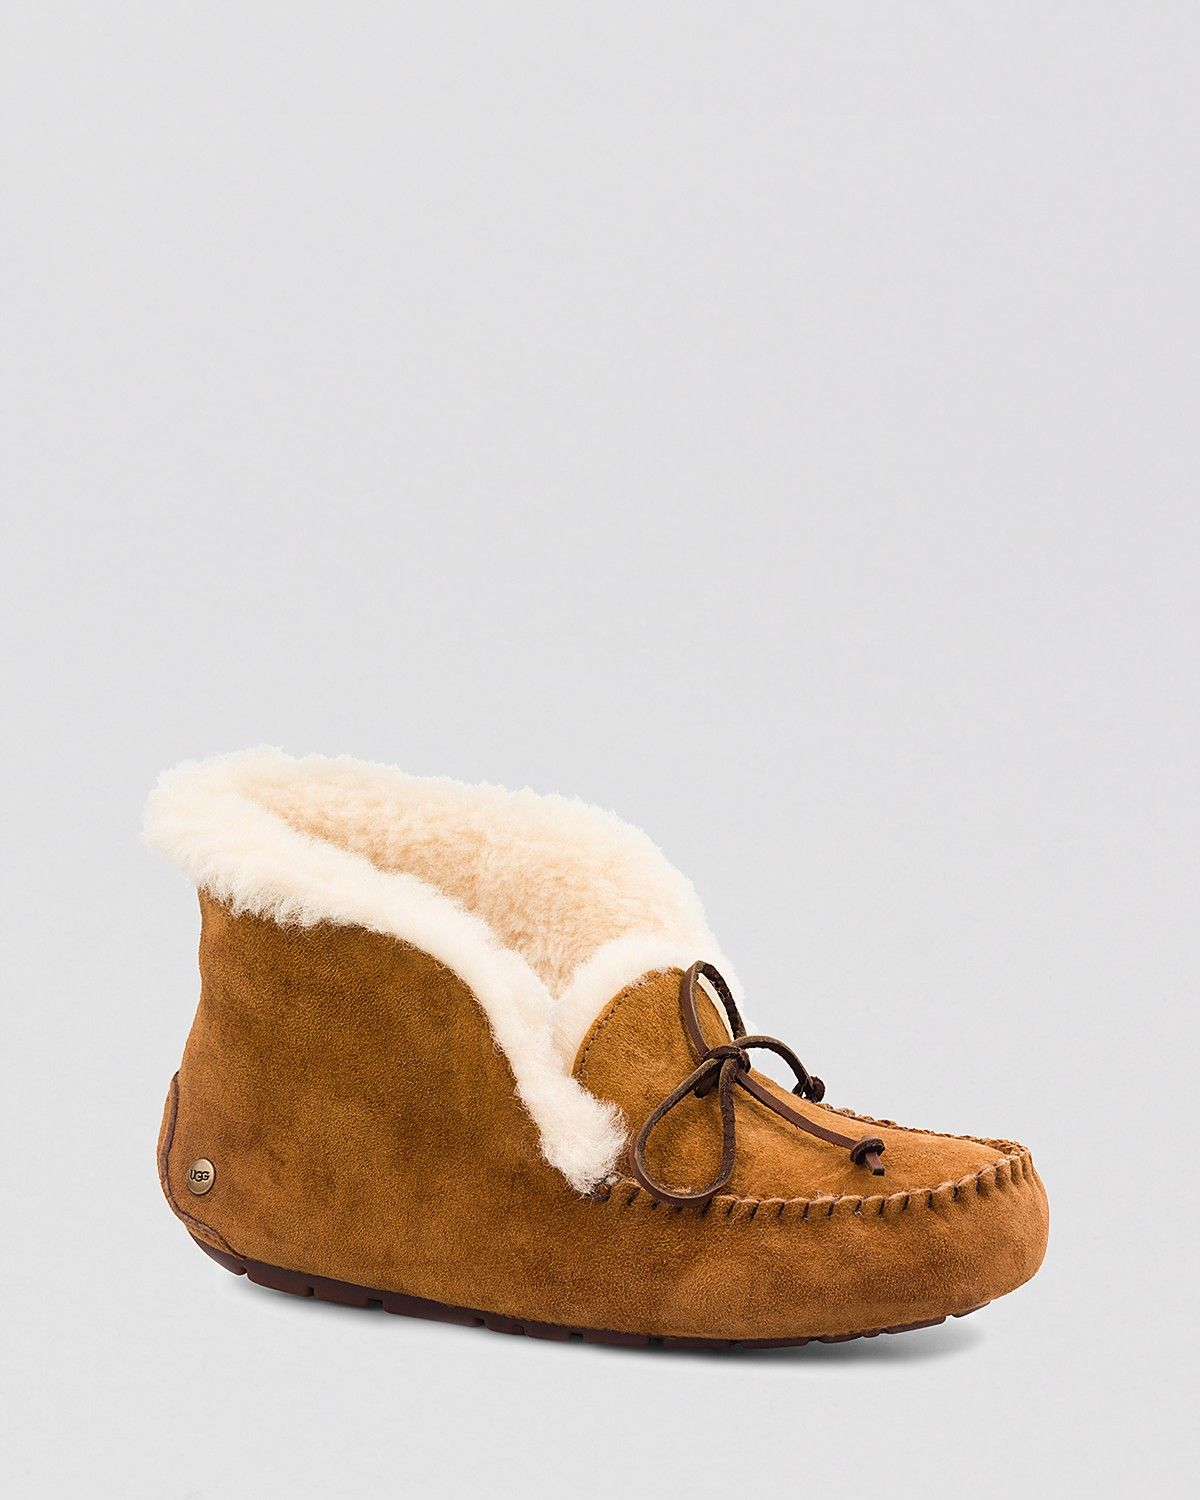 ugg australia moccasin slippers alena bloomingdale s 7 5